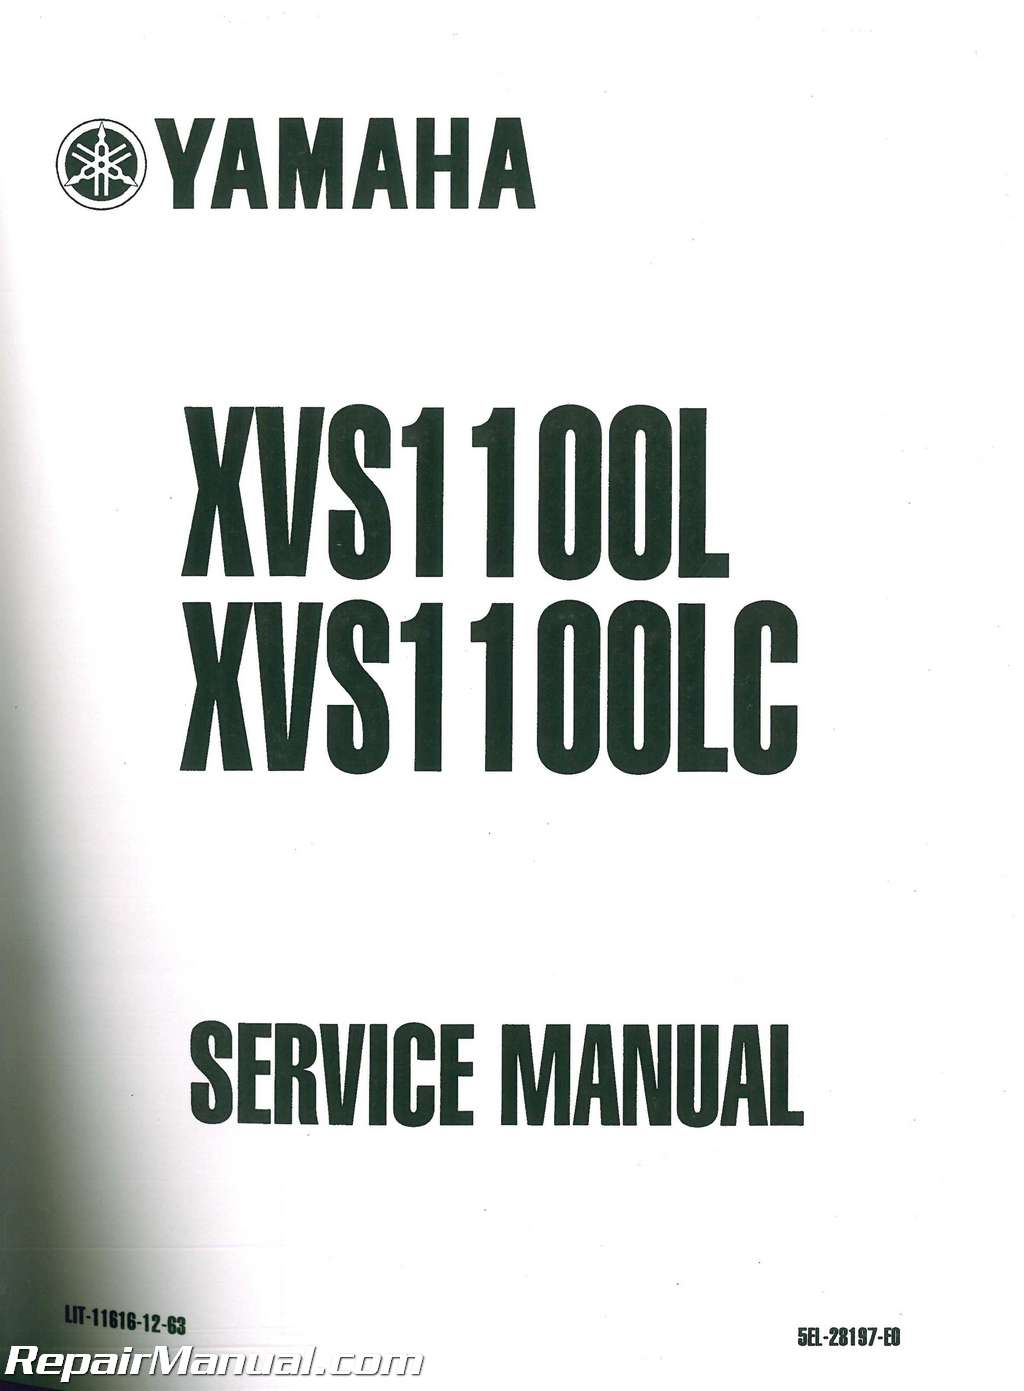 Official 2004 2005 Yamaha Xvs1100s Sc V Star Custom Factory Service Manual Lit 11616 Cu 11 on yamaha golf cart repair manual